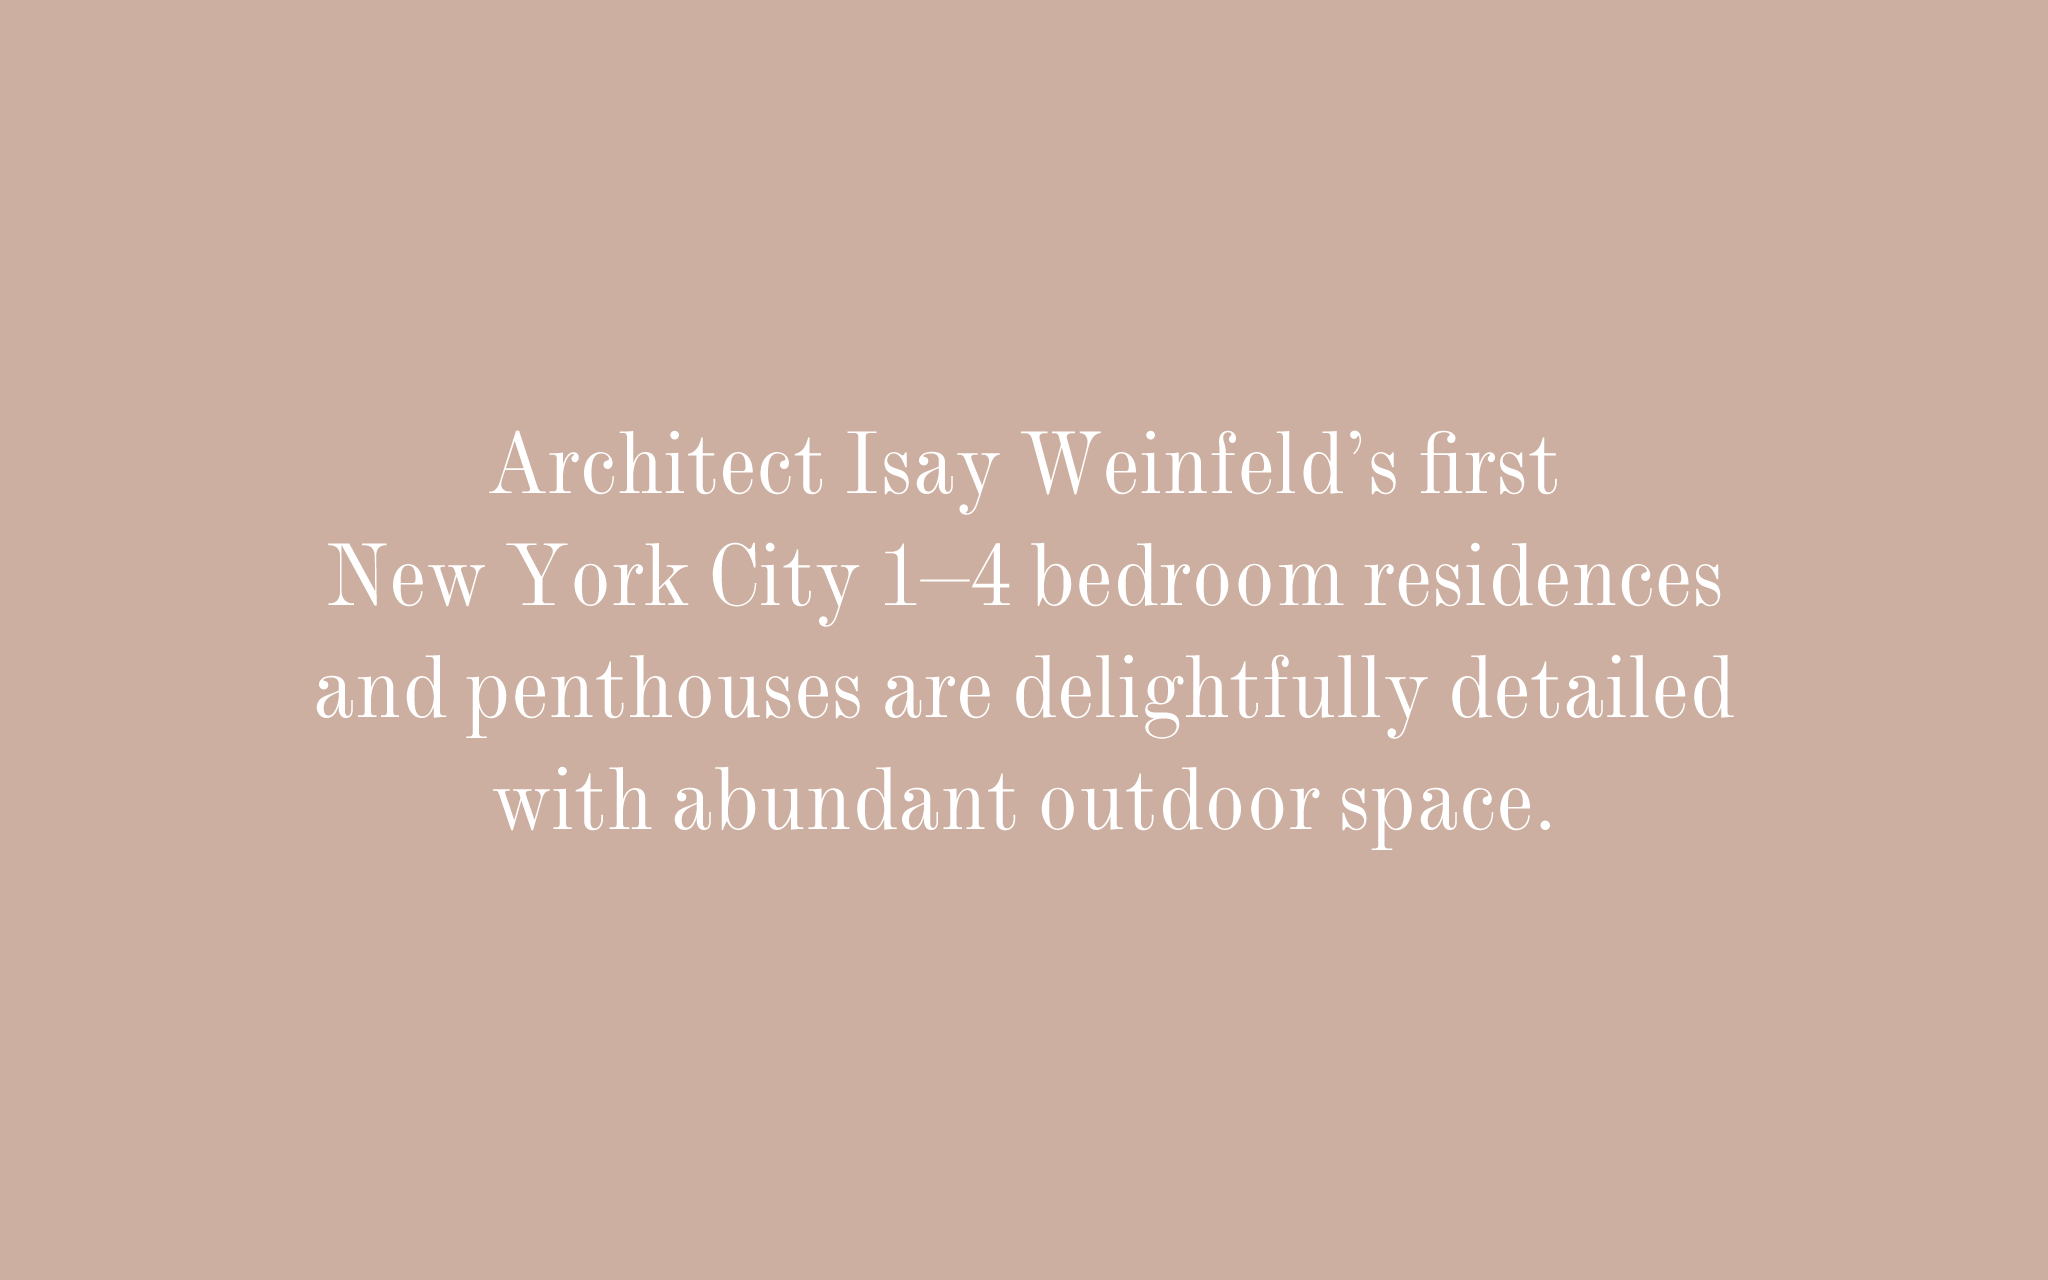 Architect Isay Weinfeld's first New York City 1–4 bedroom residences and penthouses are delightfully detailed with abundant outdoor space.